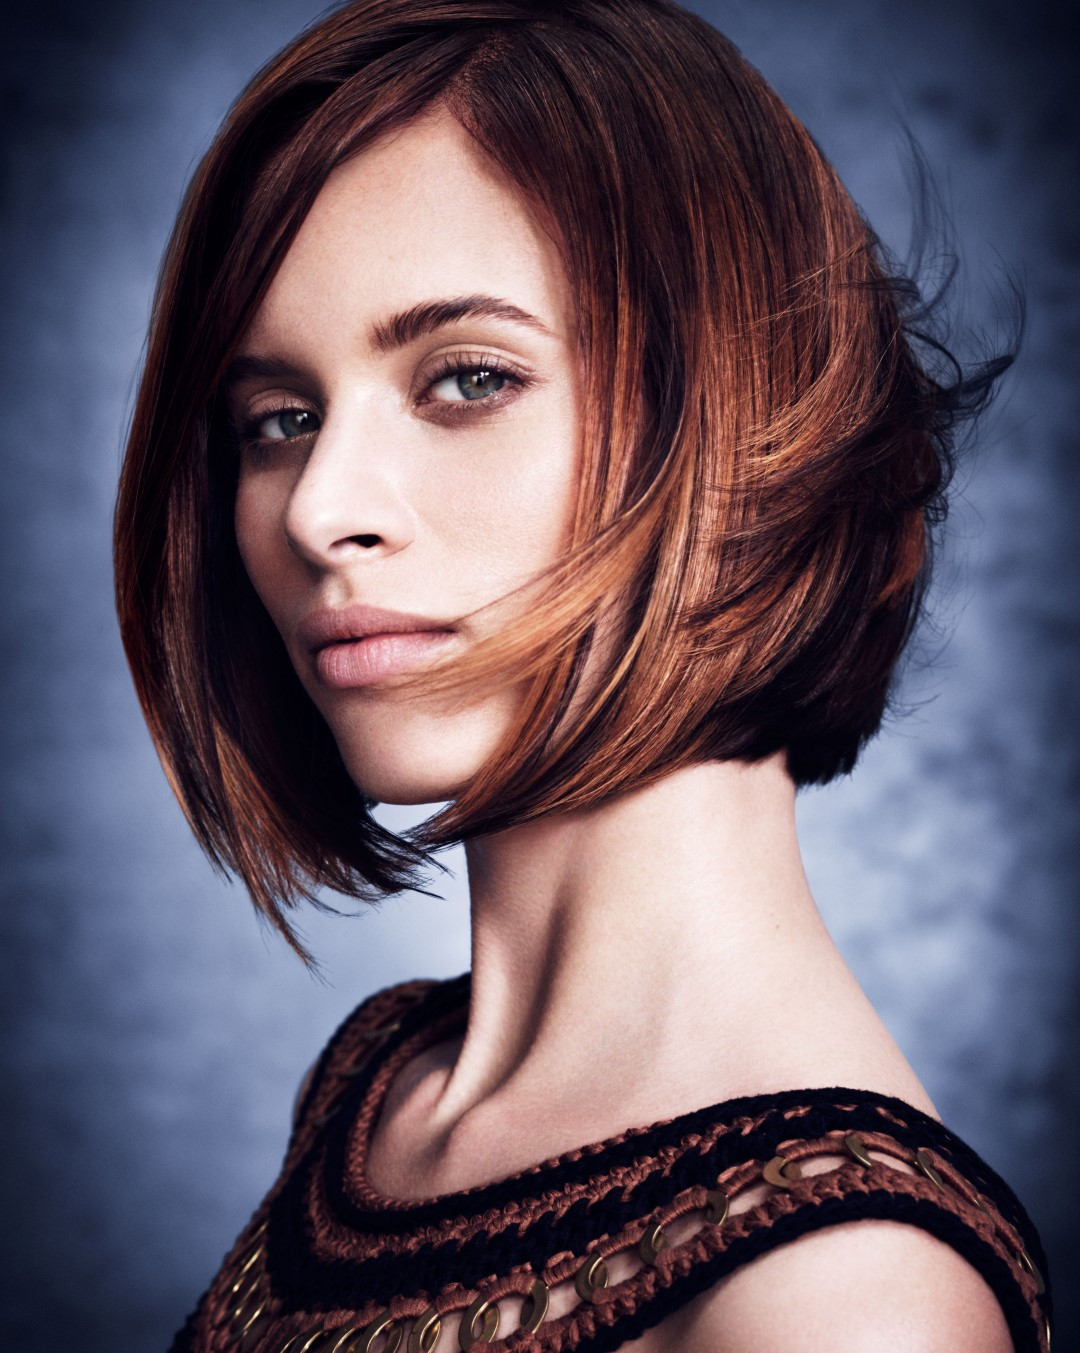 Emily j aveda salon photo gallery 8 2017 aveda illuminate emily j aveda salon photo gallery 8 2017 aveda illuminate yourself collection collection solutioingenieria Images